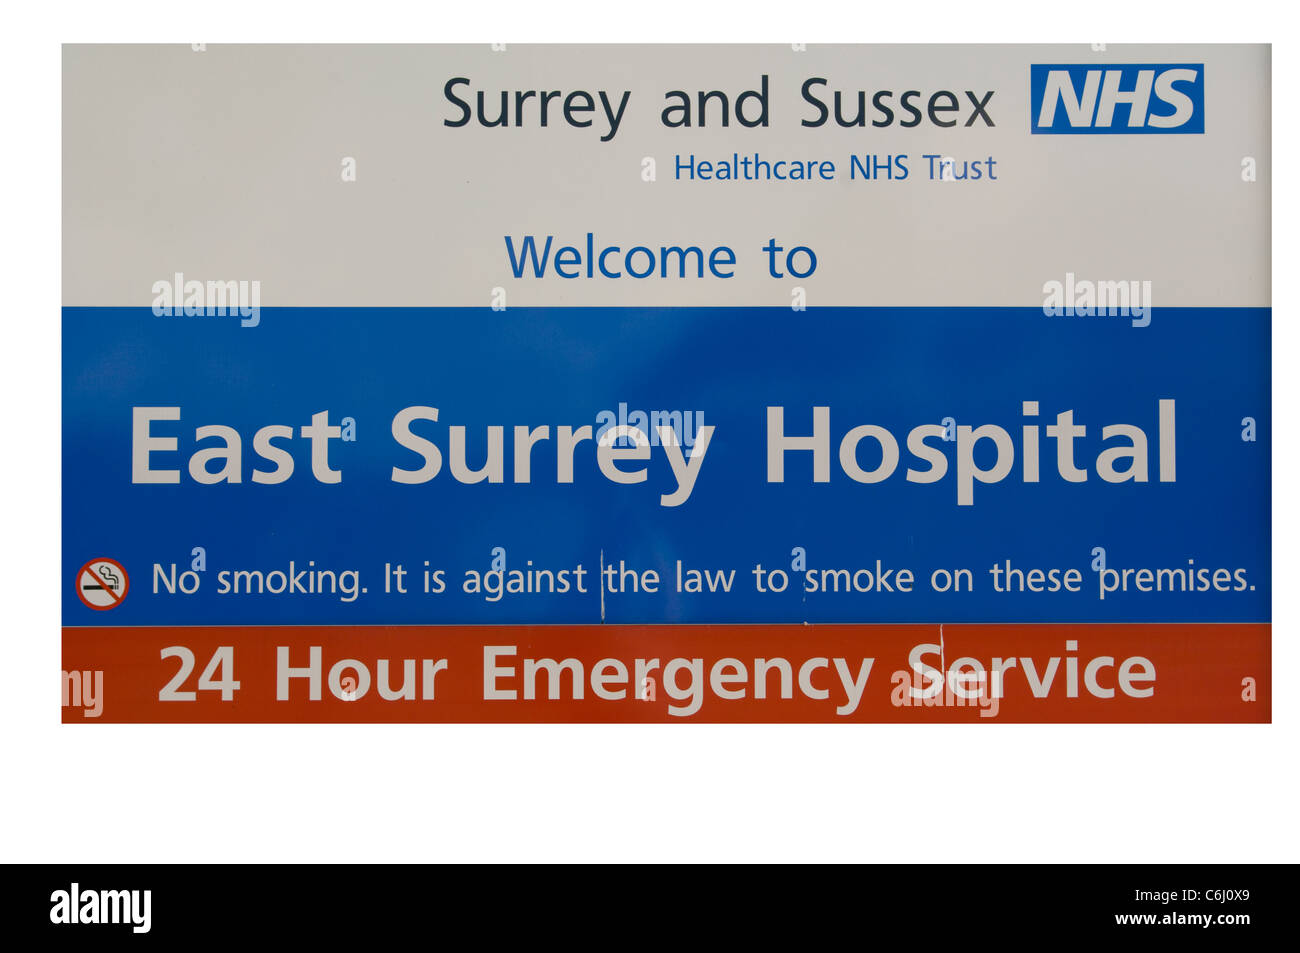 East Surrey NHS National Health Service Hospital - Stock Image